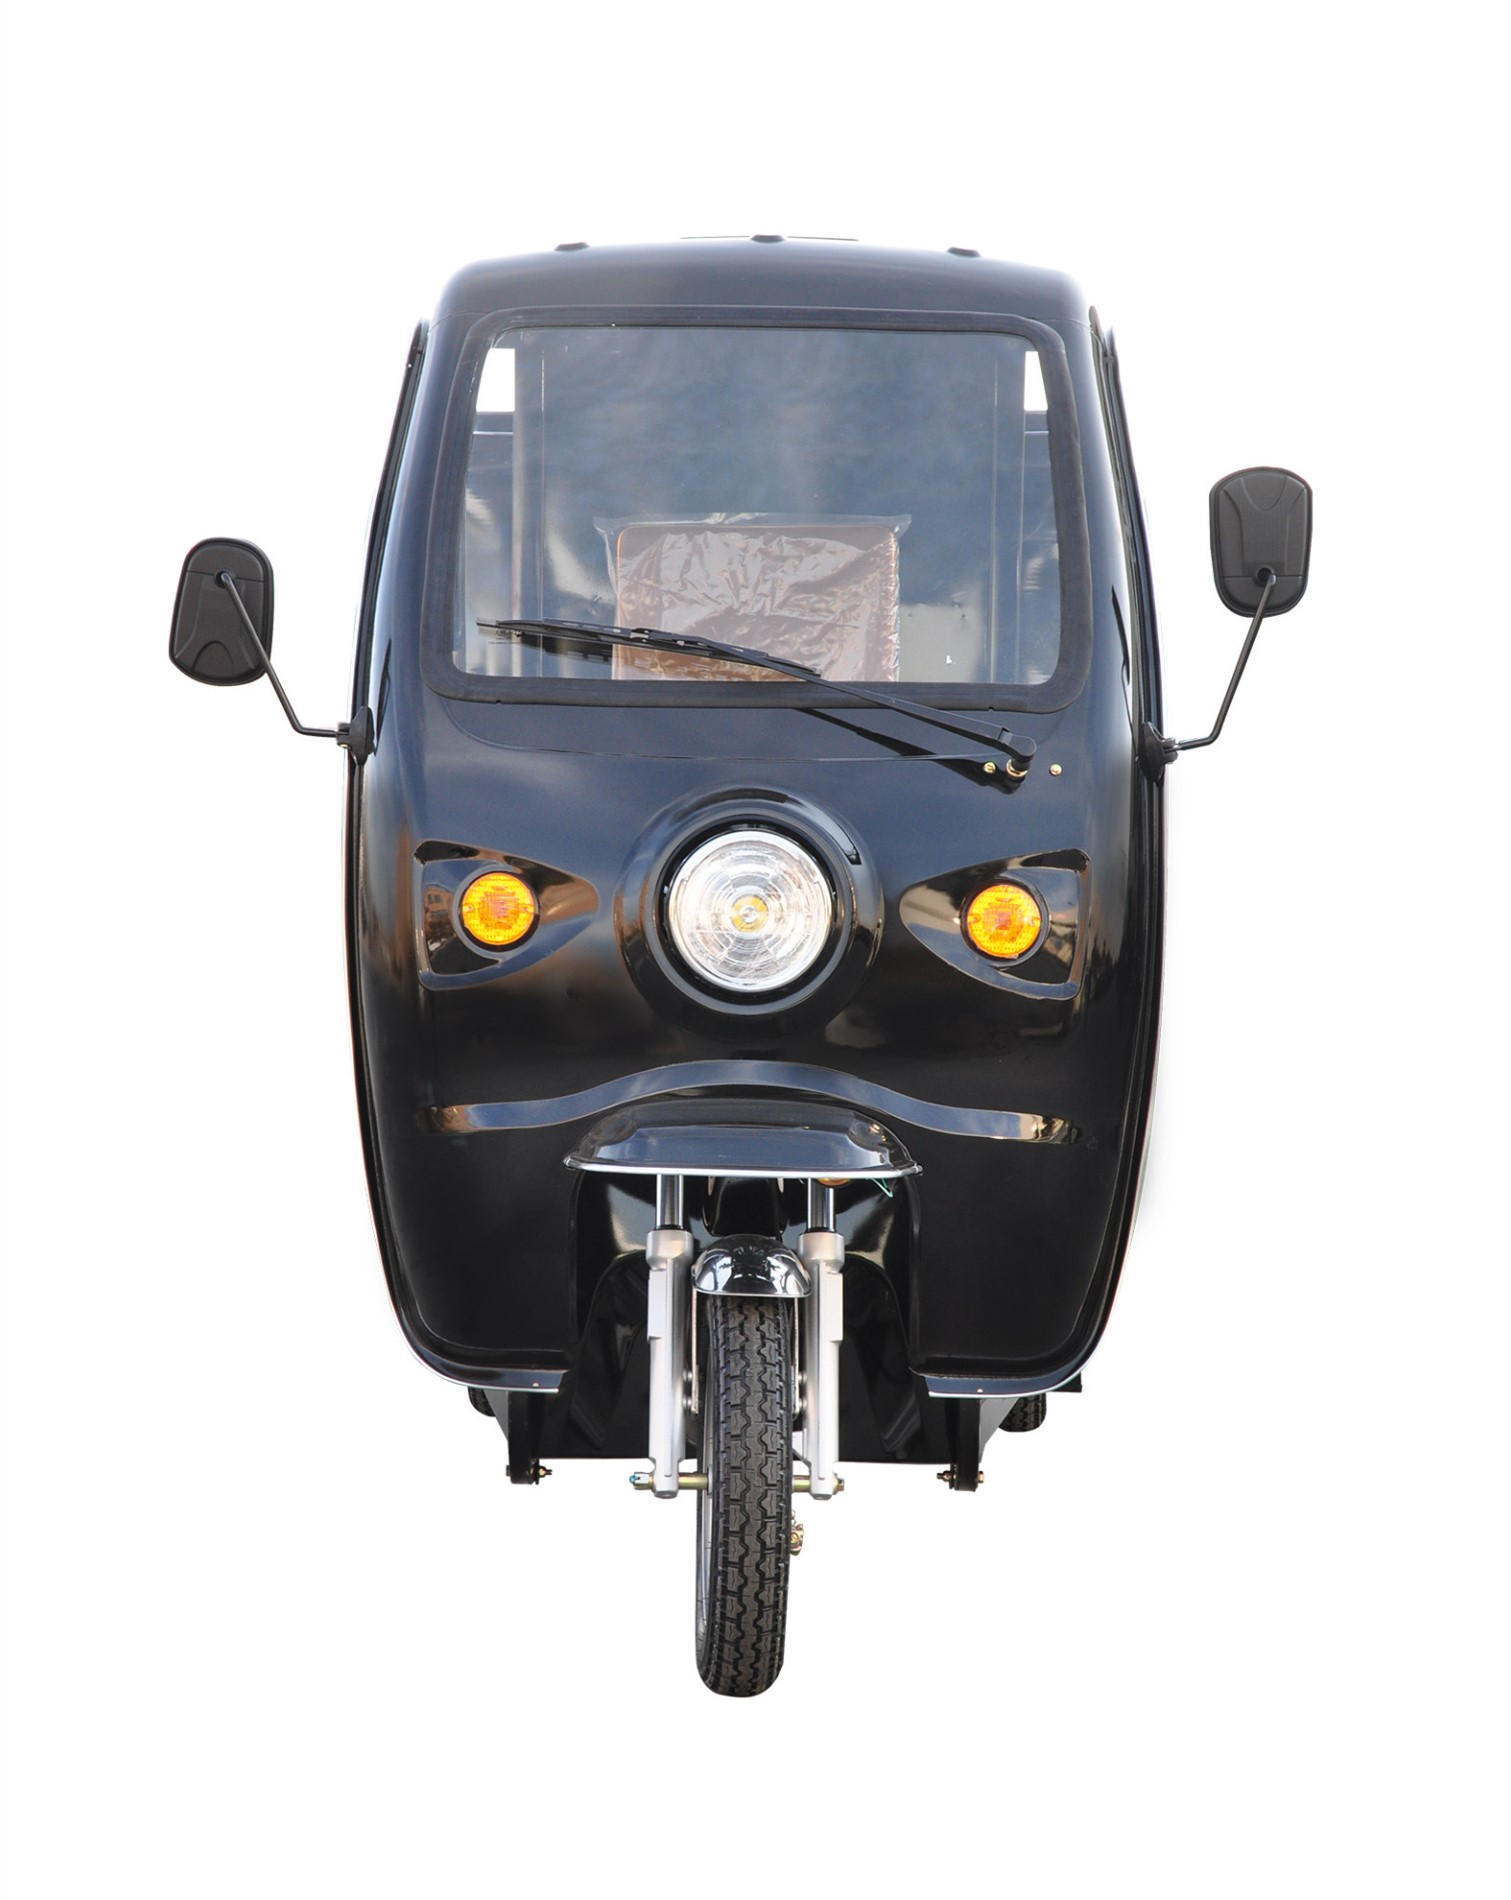 High quality 3 Wheels Electric Tricycle With Cabin Quotes,China 3 Wheels Electric Tricycle With Cabin Factory,3 Wheels Electric Tricycle With Cabin Purchasing